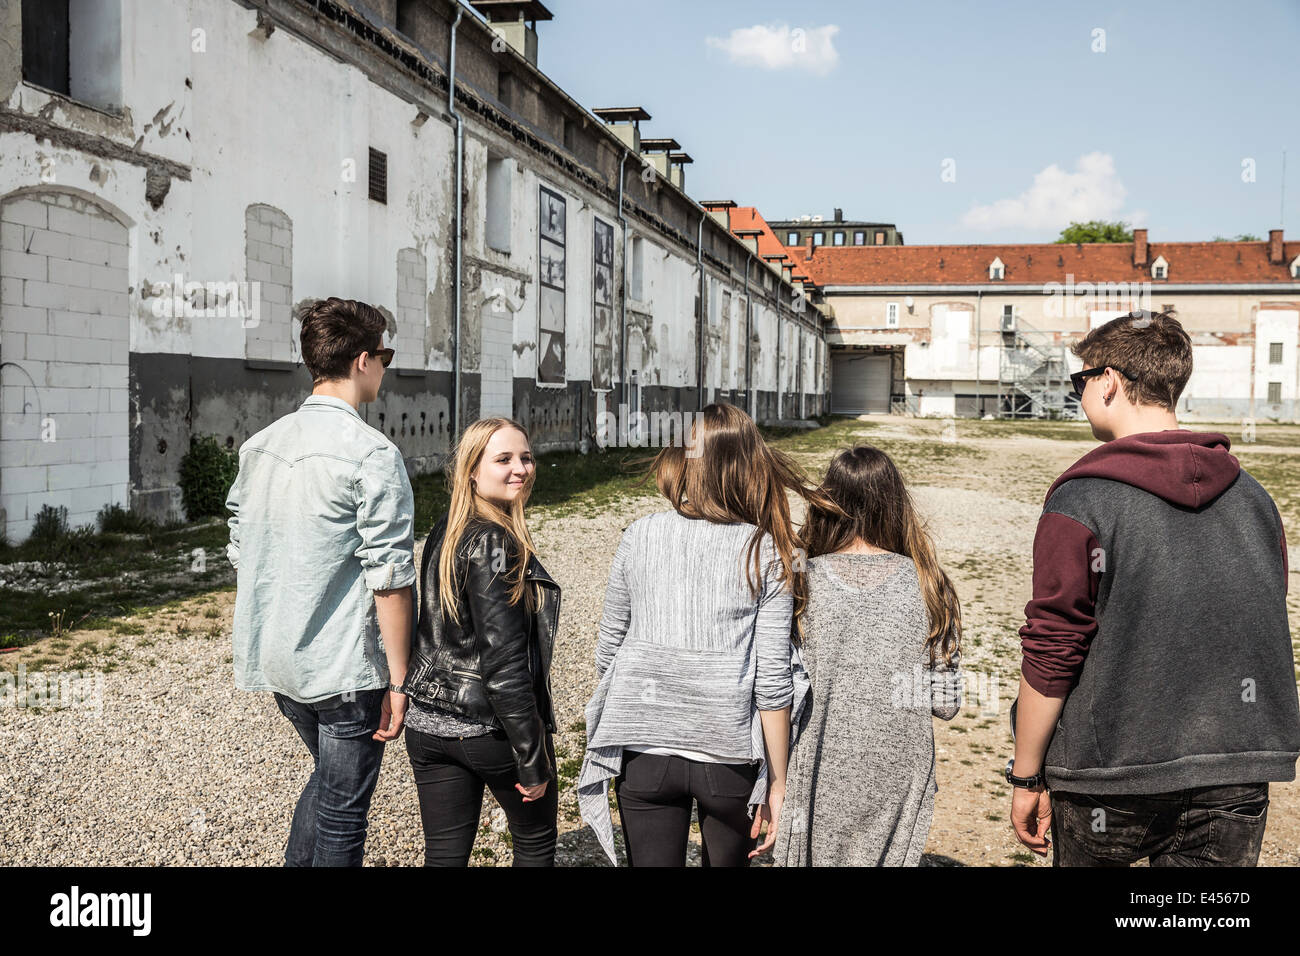 Teenagers strolling past abandoned buildings - Stock Image